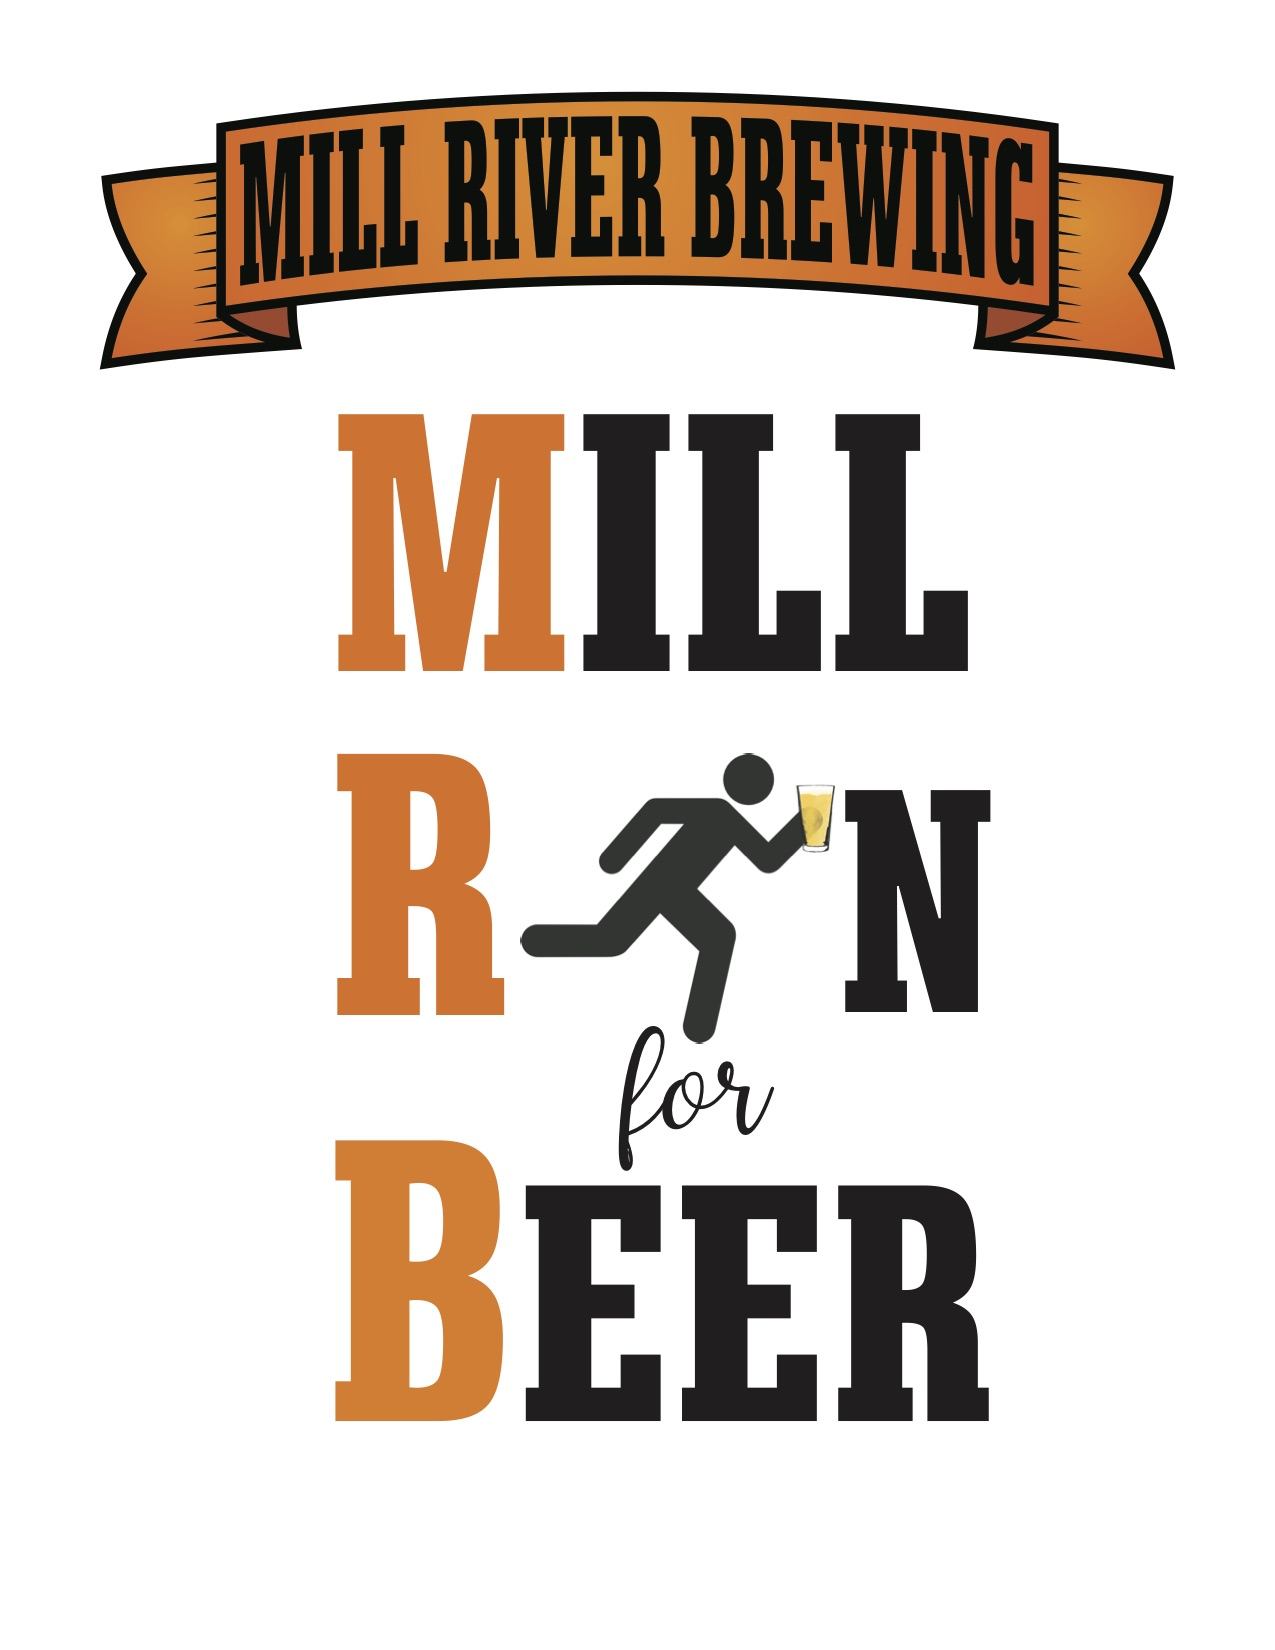 Stowe Craft Brew Race - You'll find our team repping shirts with these designs on them! Hard to miss, and easy to agree with. If you're interested in attending, you can look up tickets here. The 2019 Stowe Craft Brew Race is also on facebook, to visit their page, click here.Worried you'll get lost? I've got the address for you! (Hope you have a smartphone) Stoweflake Mountain Resort and Spa 1746 Mountain Rd, Stowe, Vermont 05672